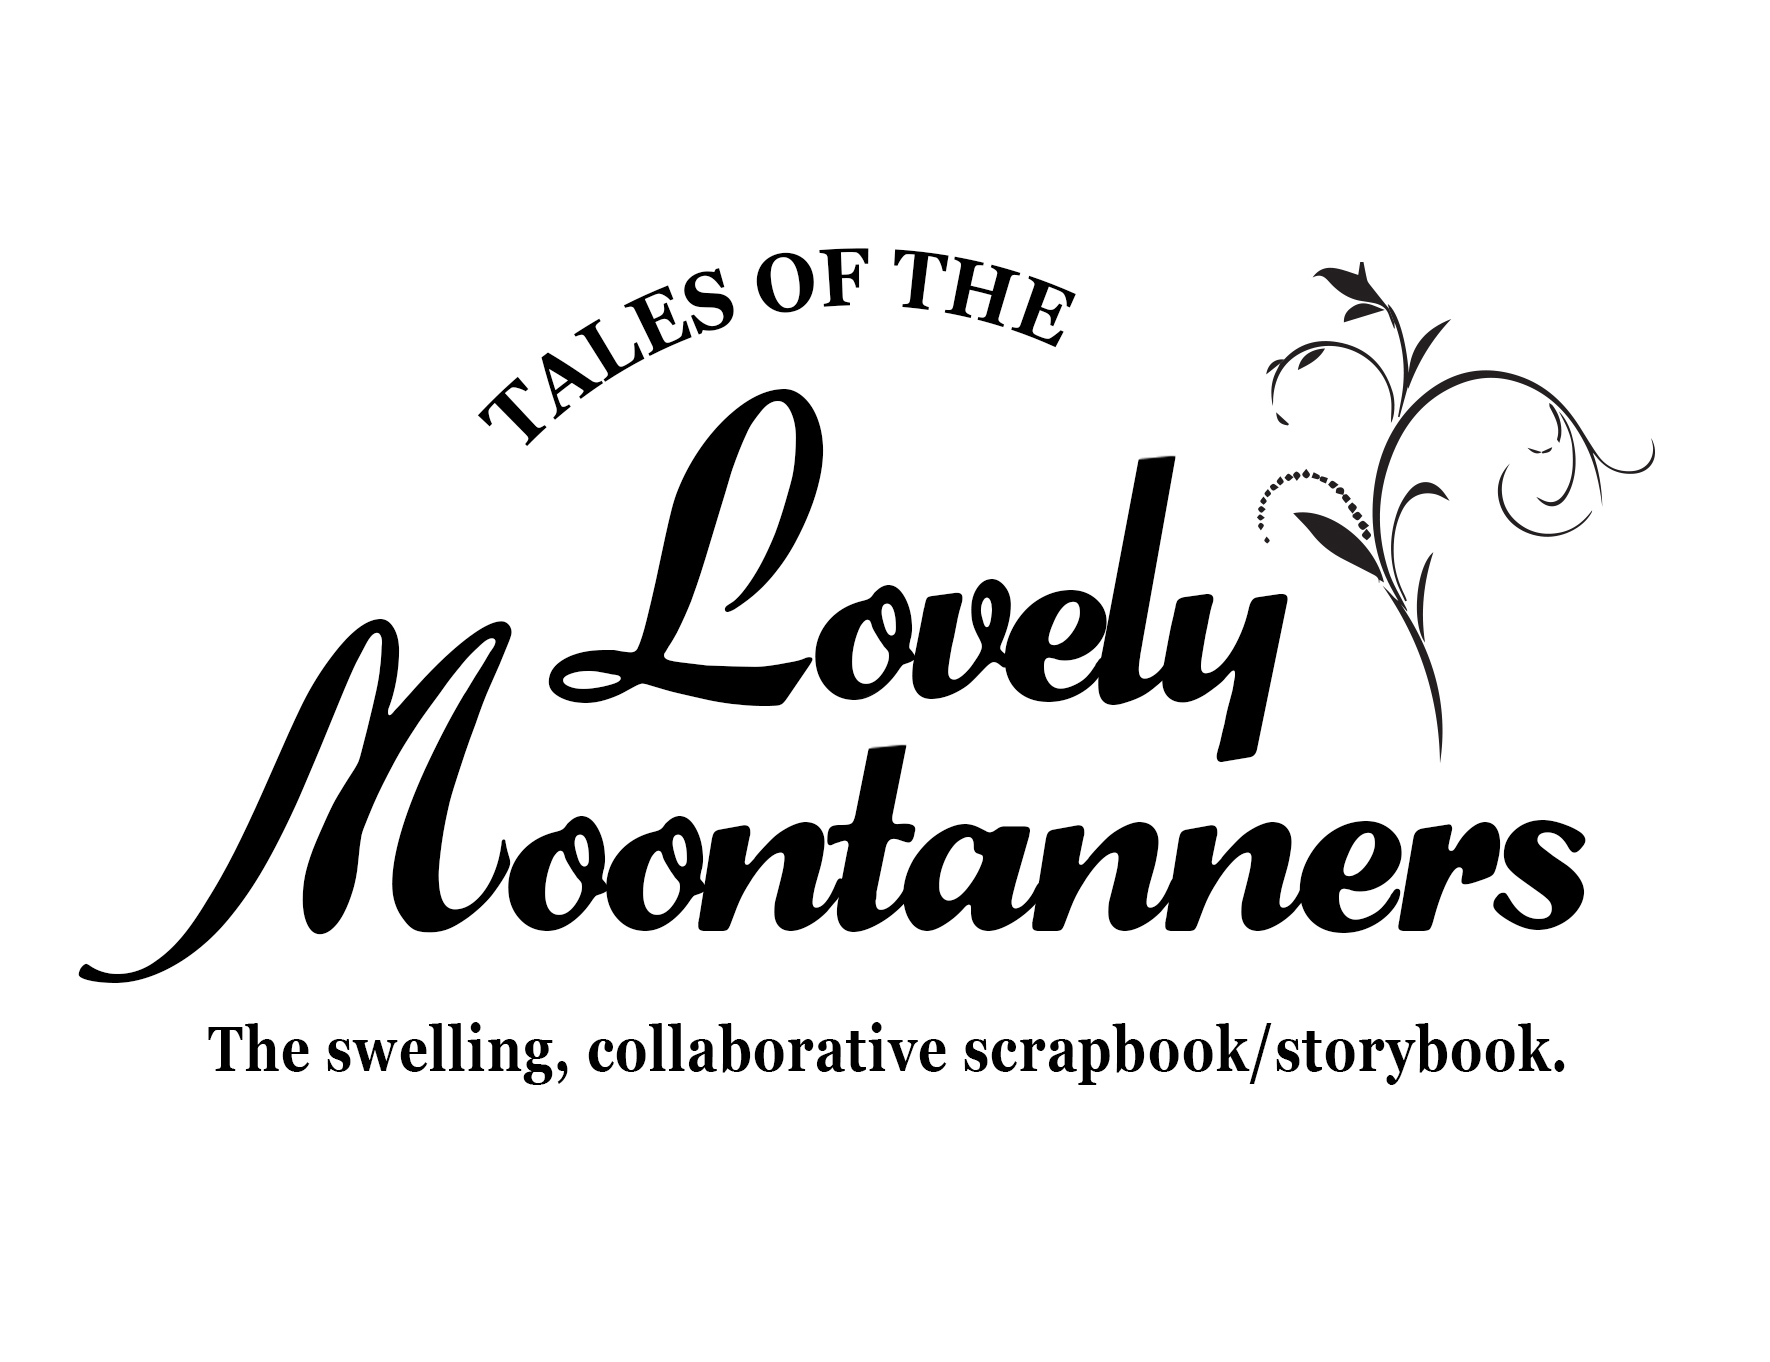 LovelyMoontanners